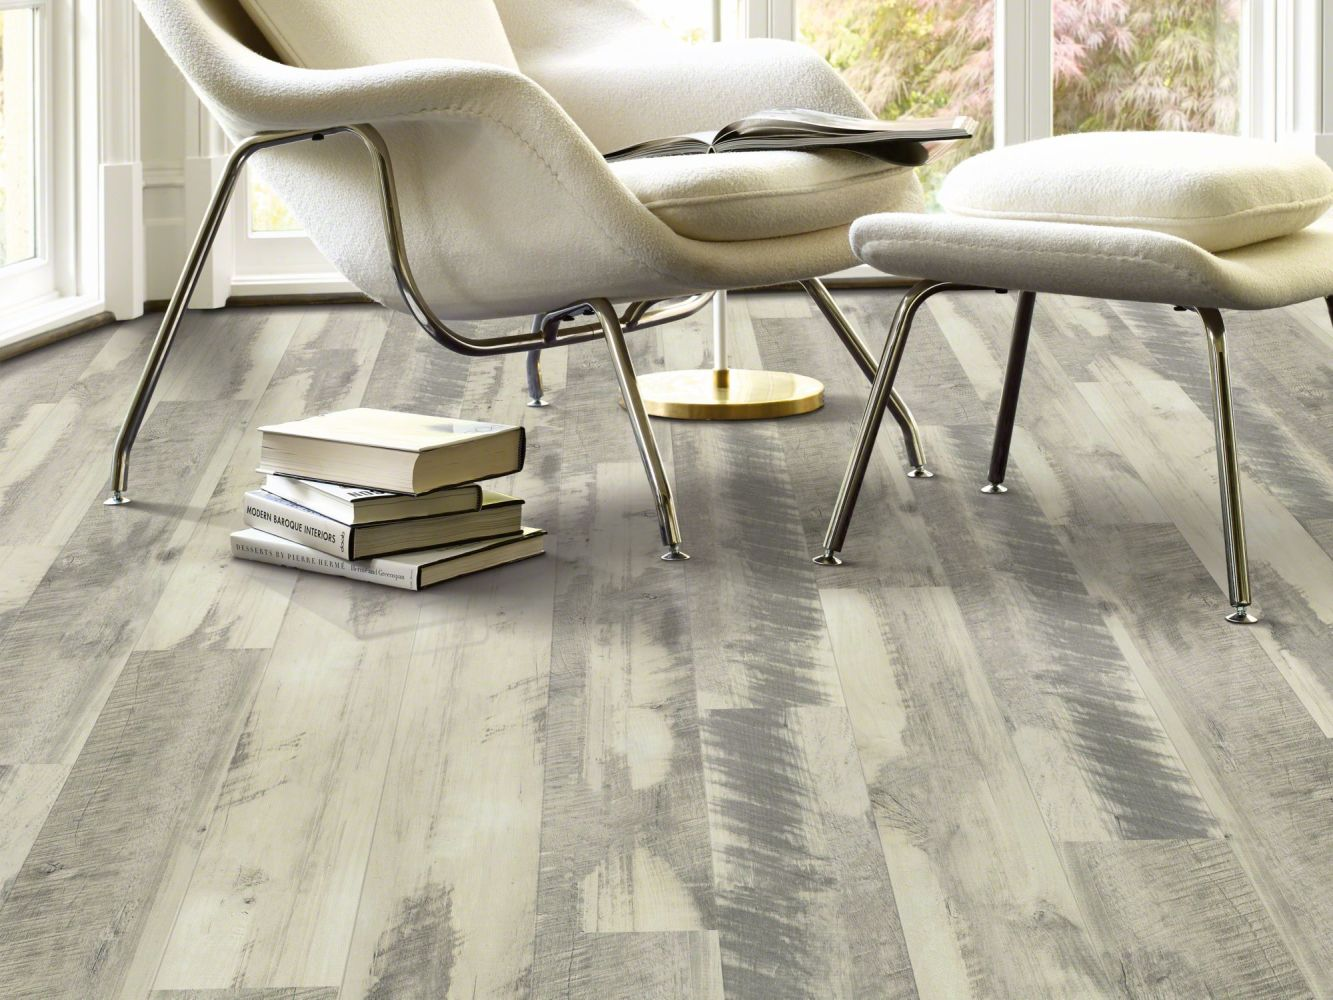 Shaw Floors Resilient Property Solutions Optimum 512c Plus Gray Barnwood 00142_VE210